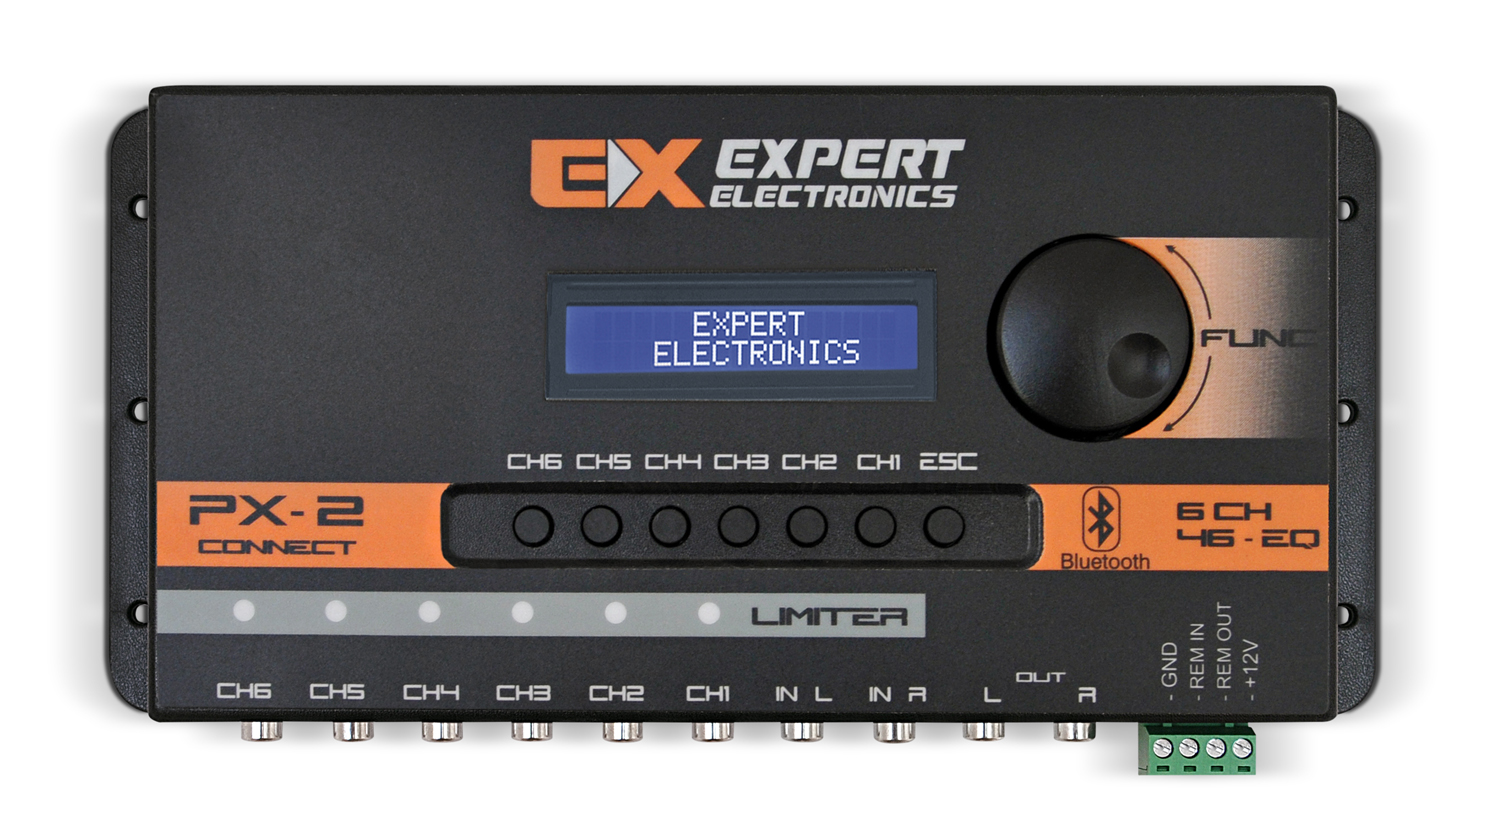 PX-2 CONNECT_SUPERIOR_EXPERT